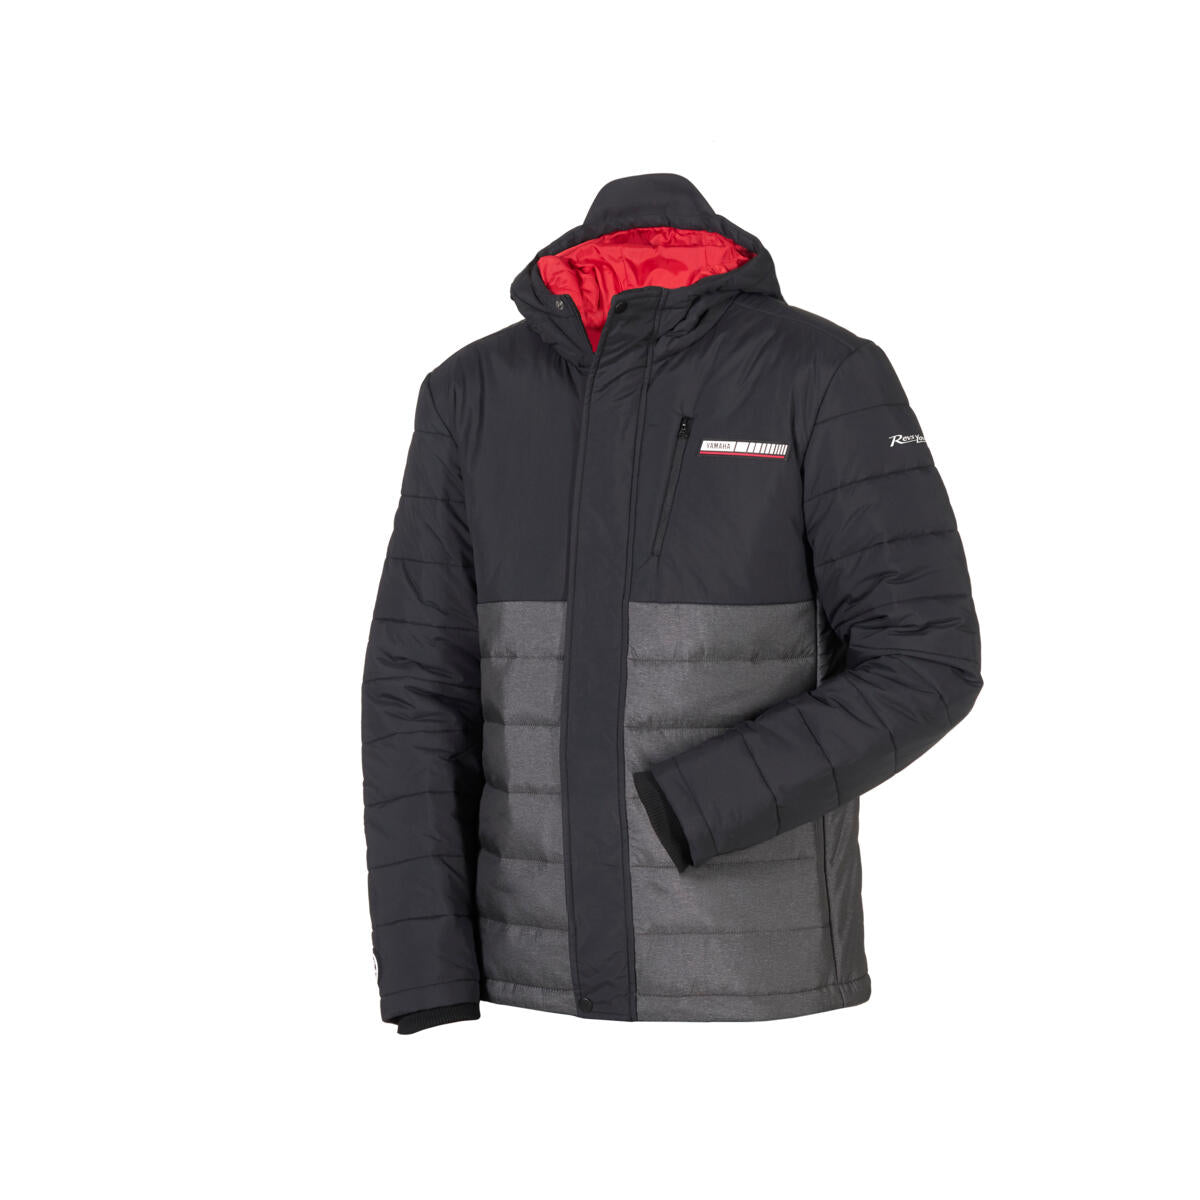 REVS Men's Outerwear Jacket